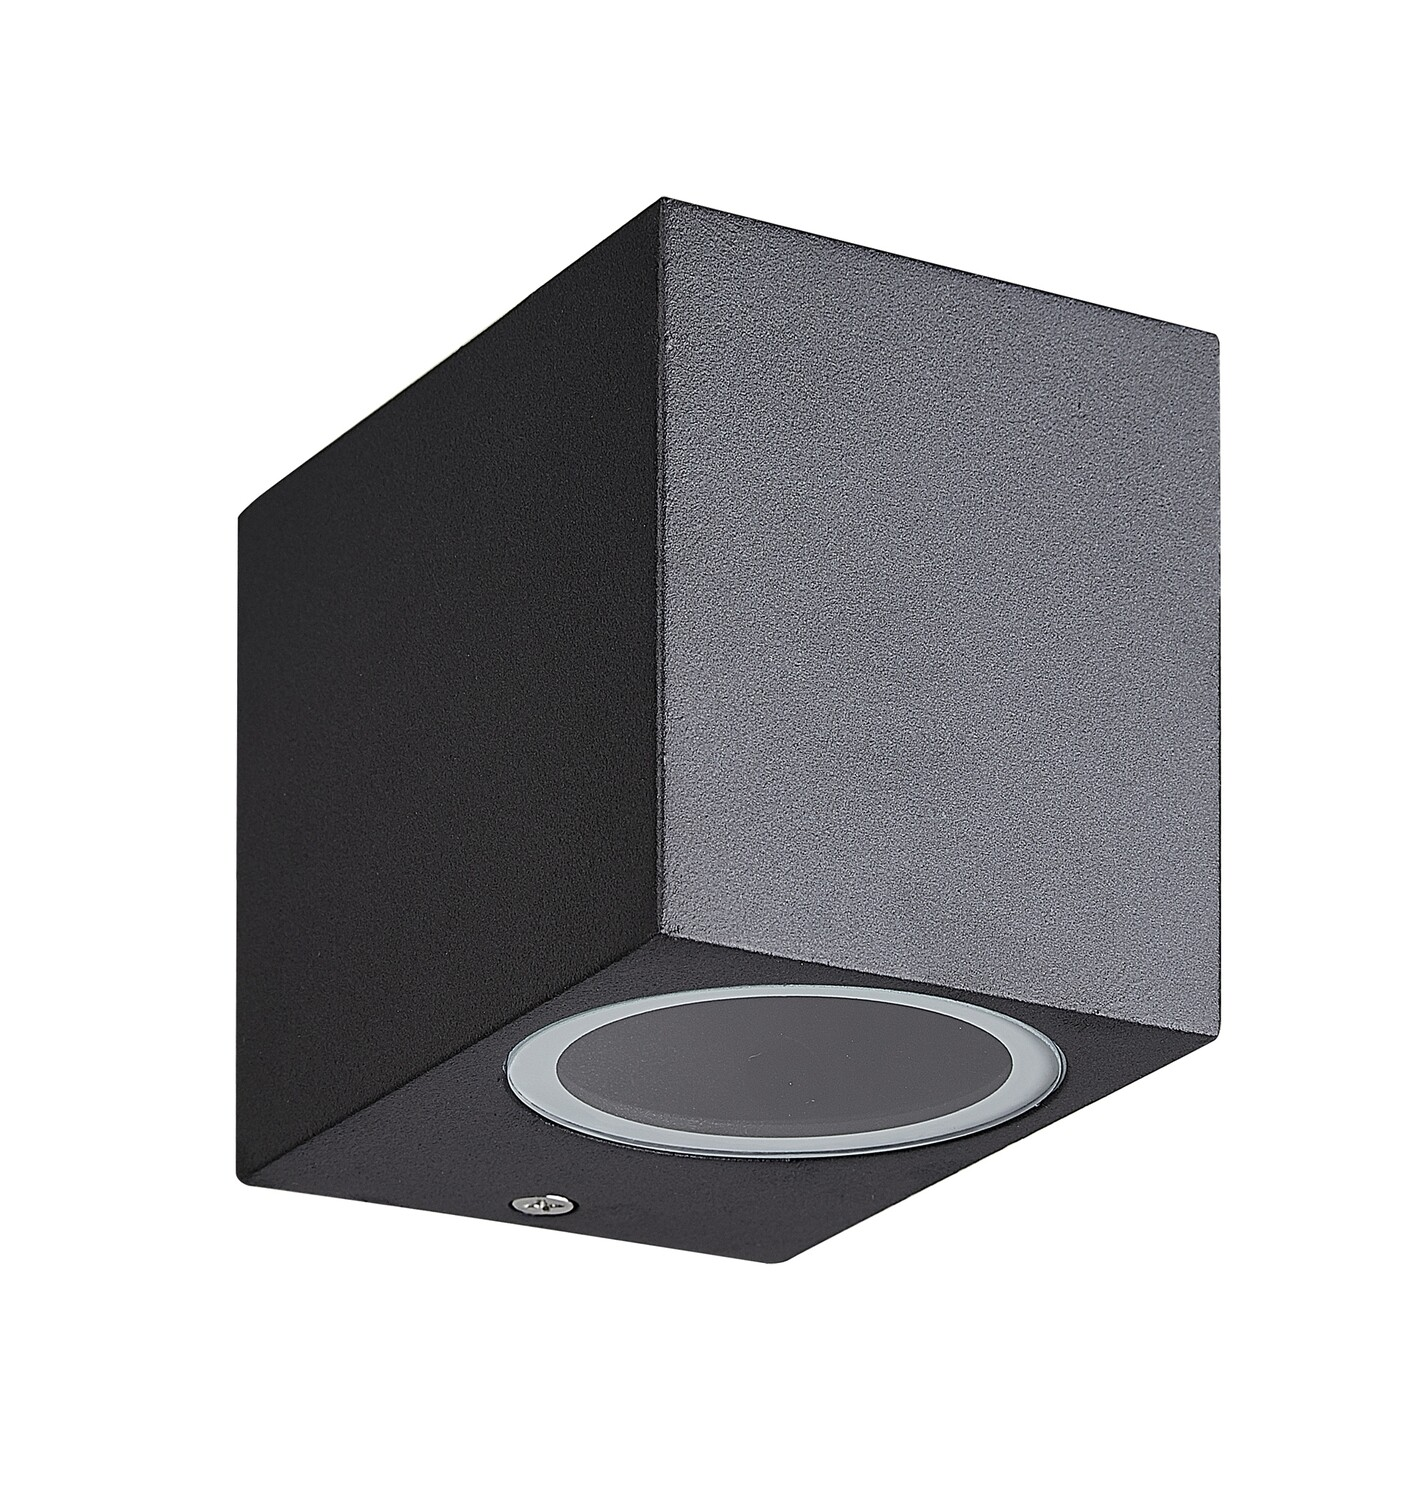 Kandanchu Square Wall Lamp, 1 x GU10, IP54 Sand Black